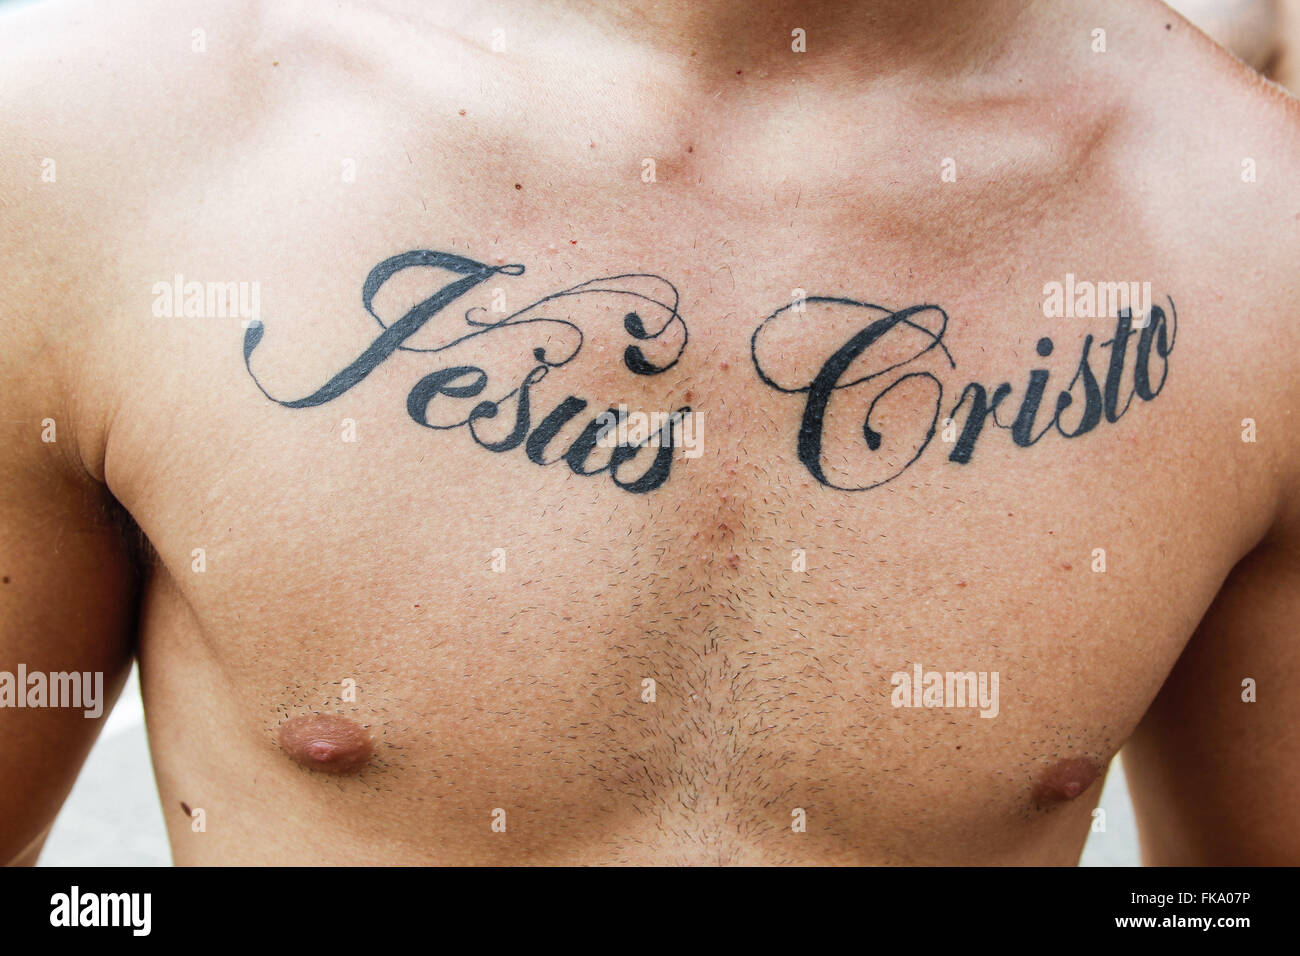 Jesus Christ Tattoo High Resolution Stock Photography And Images Alamy Jesus christ on those images can be featured praying, wearing a crown of thorns or. https www alamy com stock photo reveler with tattoo on chest with writing jesus christ during the 97950042 html